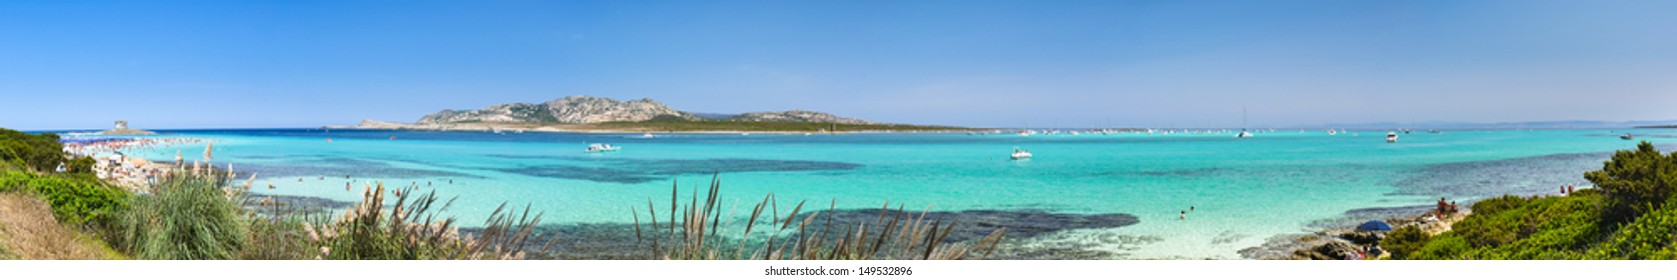 Panoramic view of European most beautiful beach La Pelosa in Sardinia